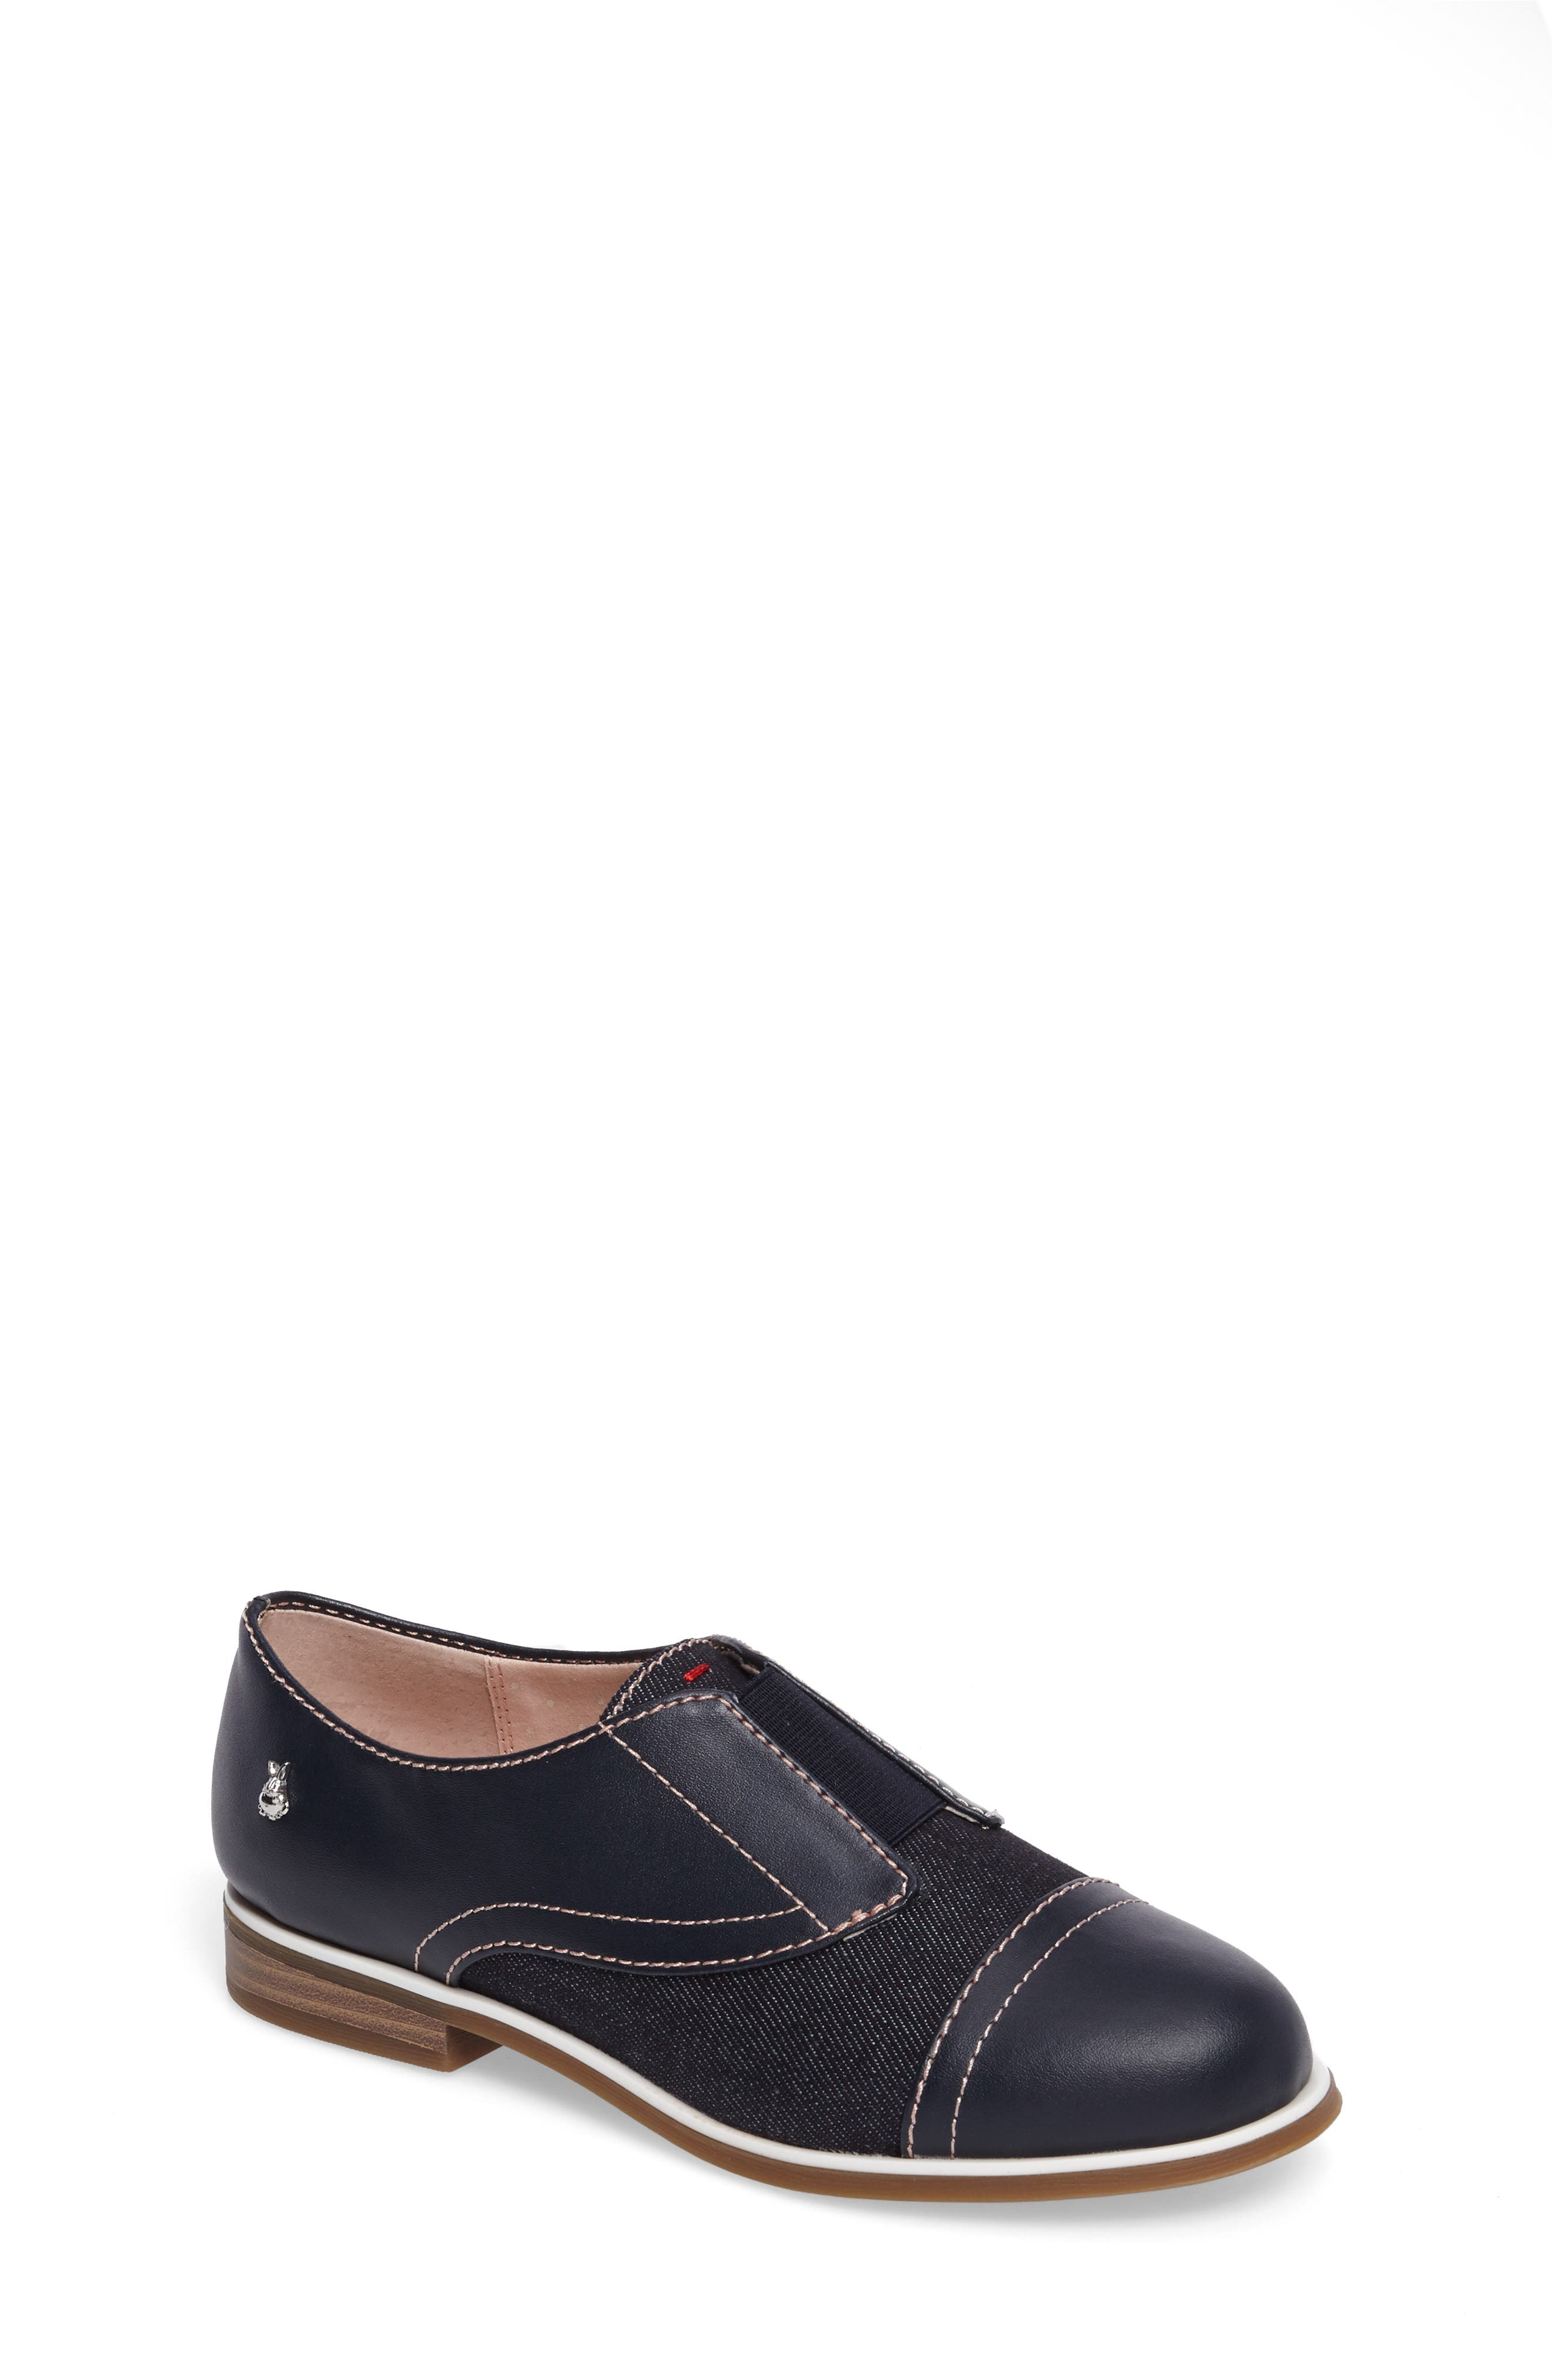 Alternate Image 1 Selected - ED Ellen Degeneres Kassie Laceless Cap Toe Oxford (Toddler, Little Kid & Big Kid)